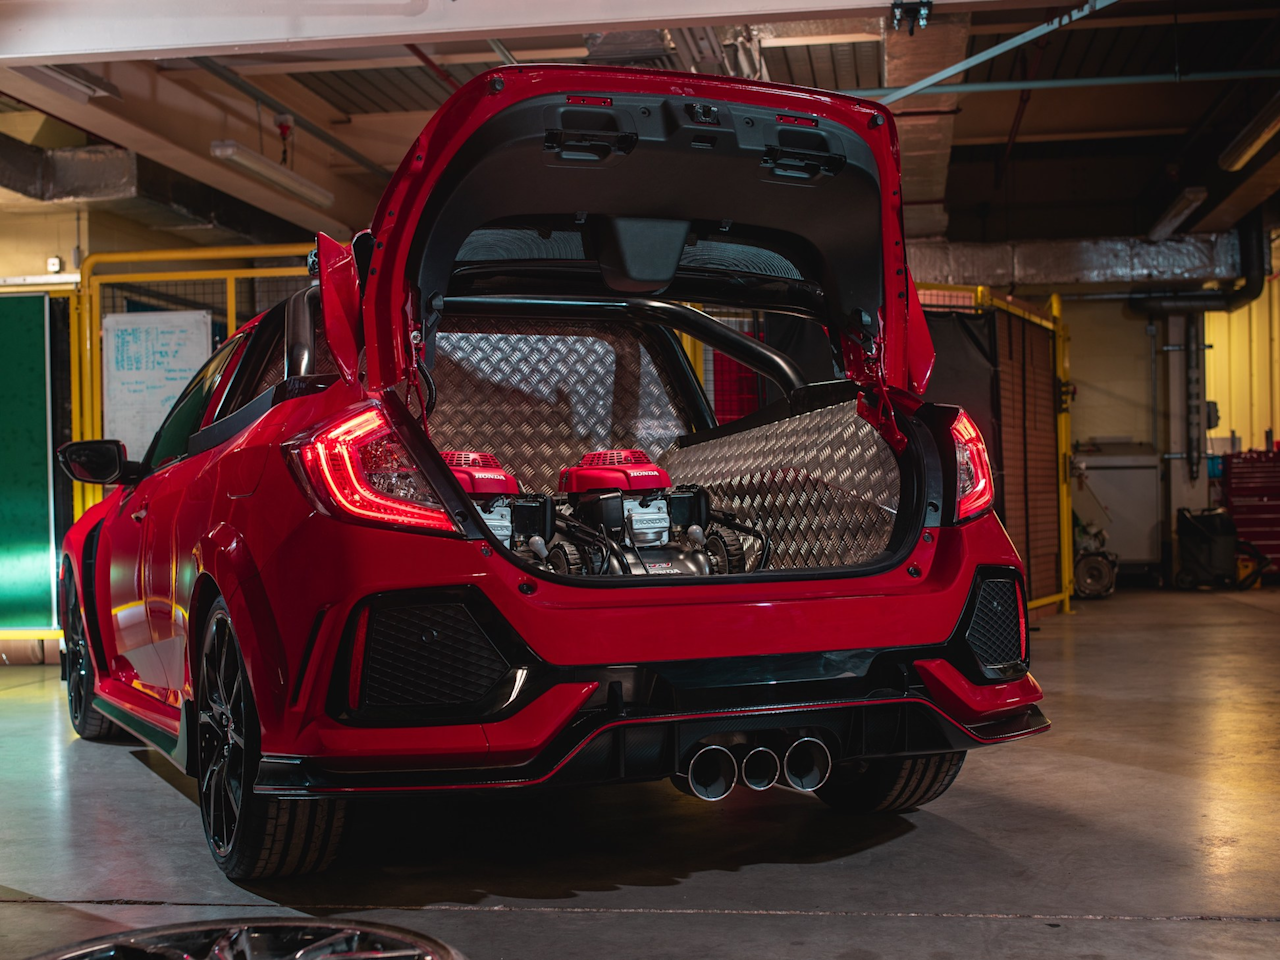 Honda built a Civic pickup truck and it's absolutely insane